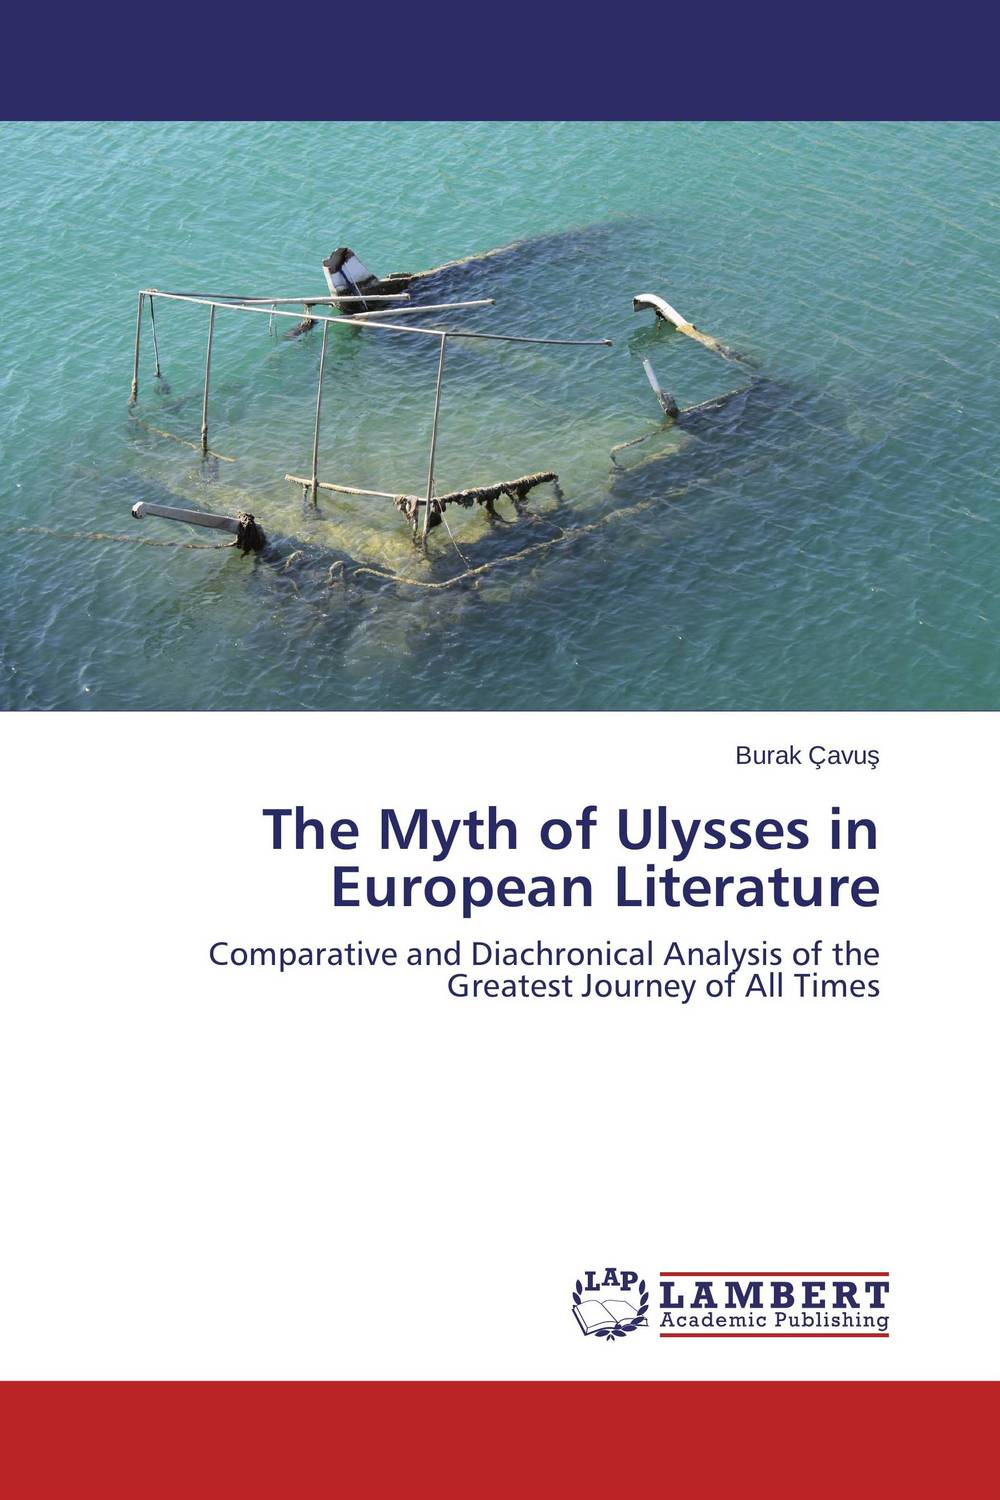 The Myth of Ulysses in European Literature hugo the billionaire of french literature